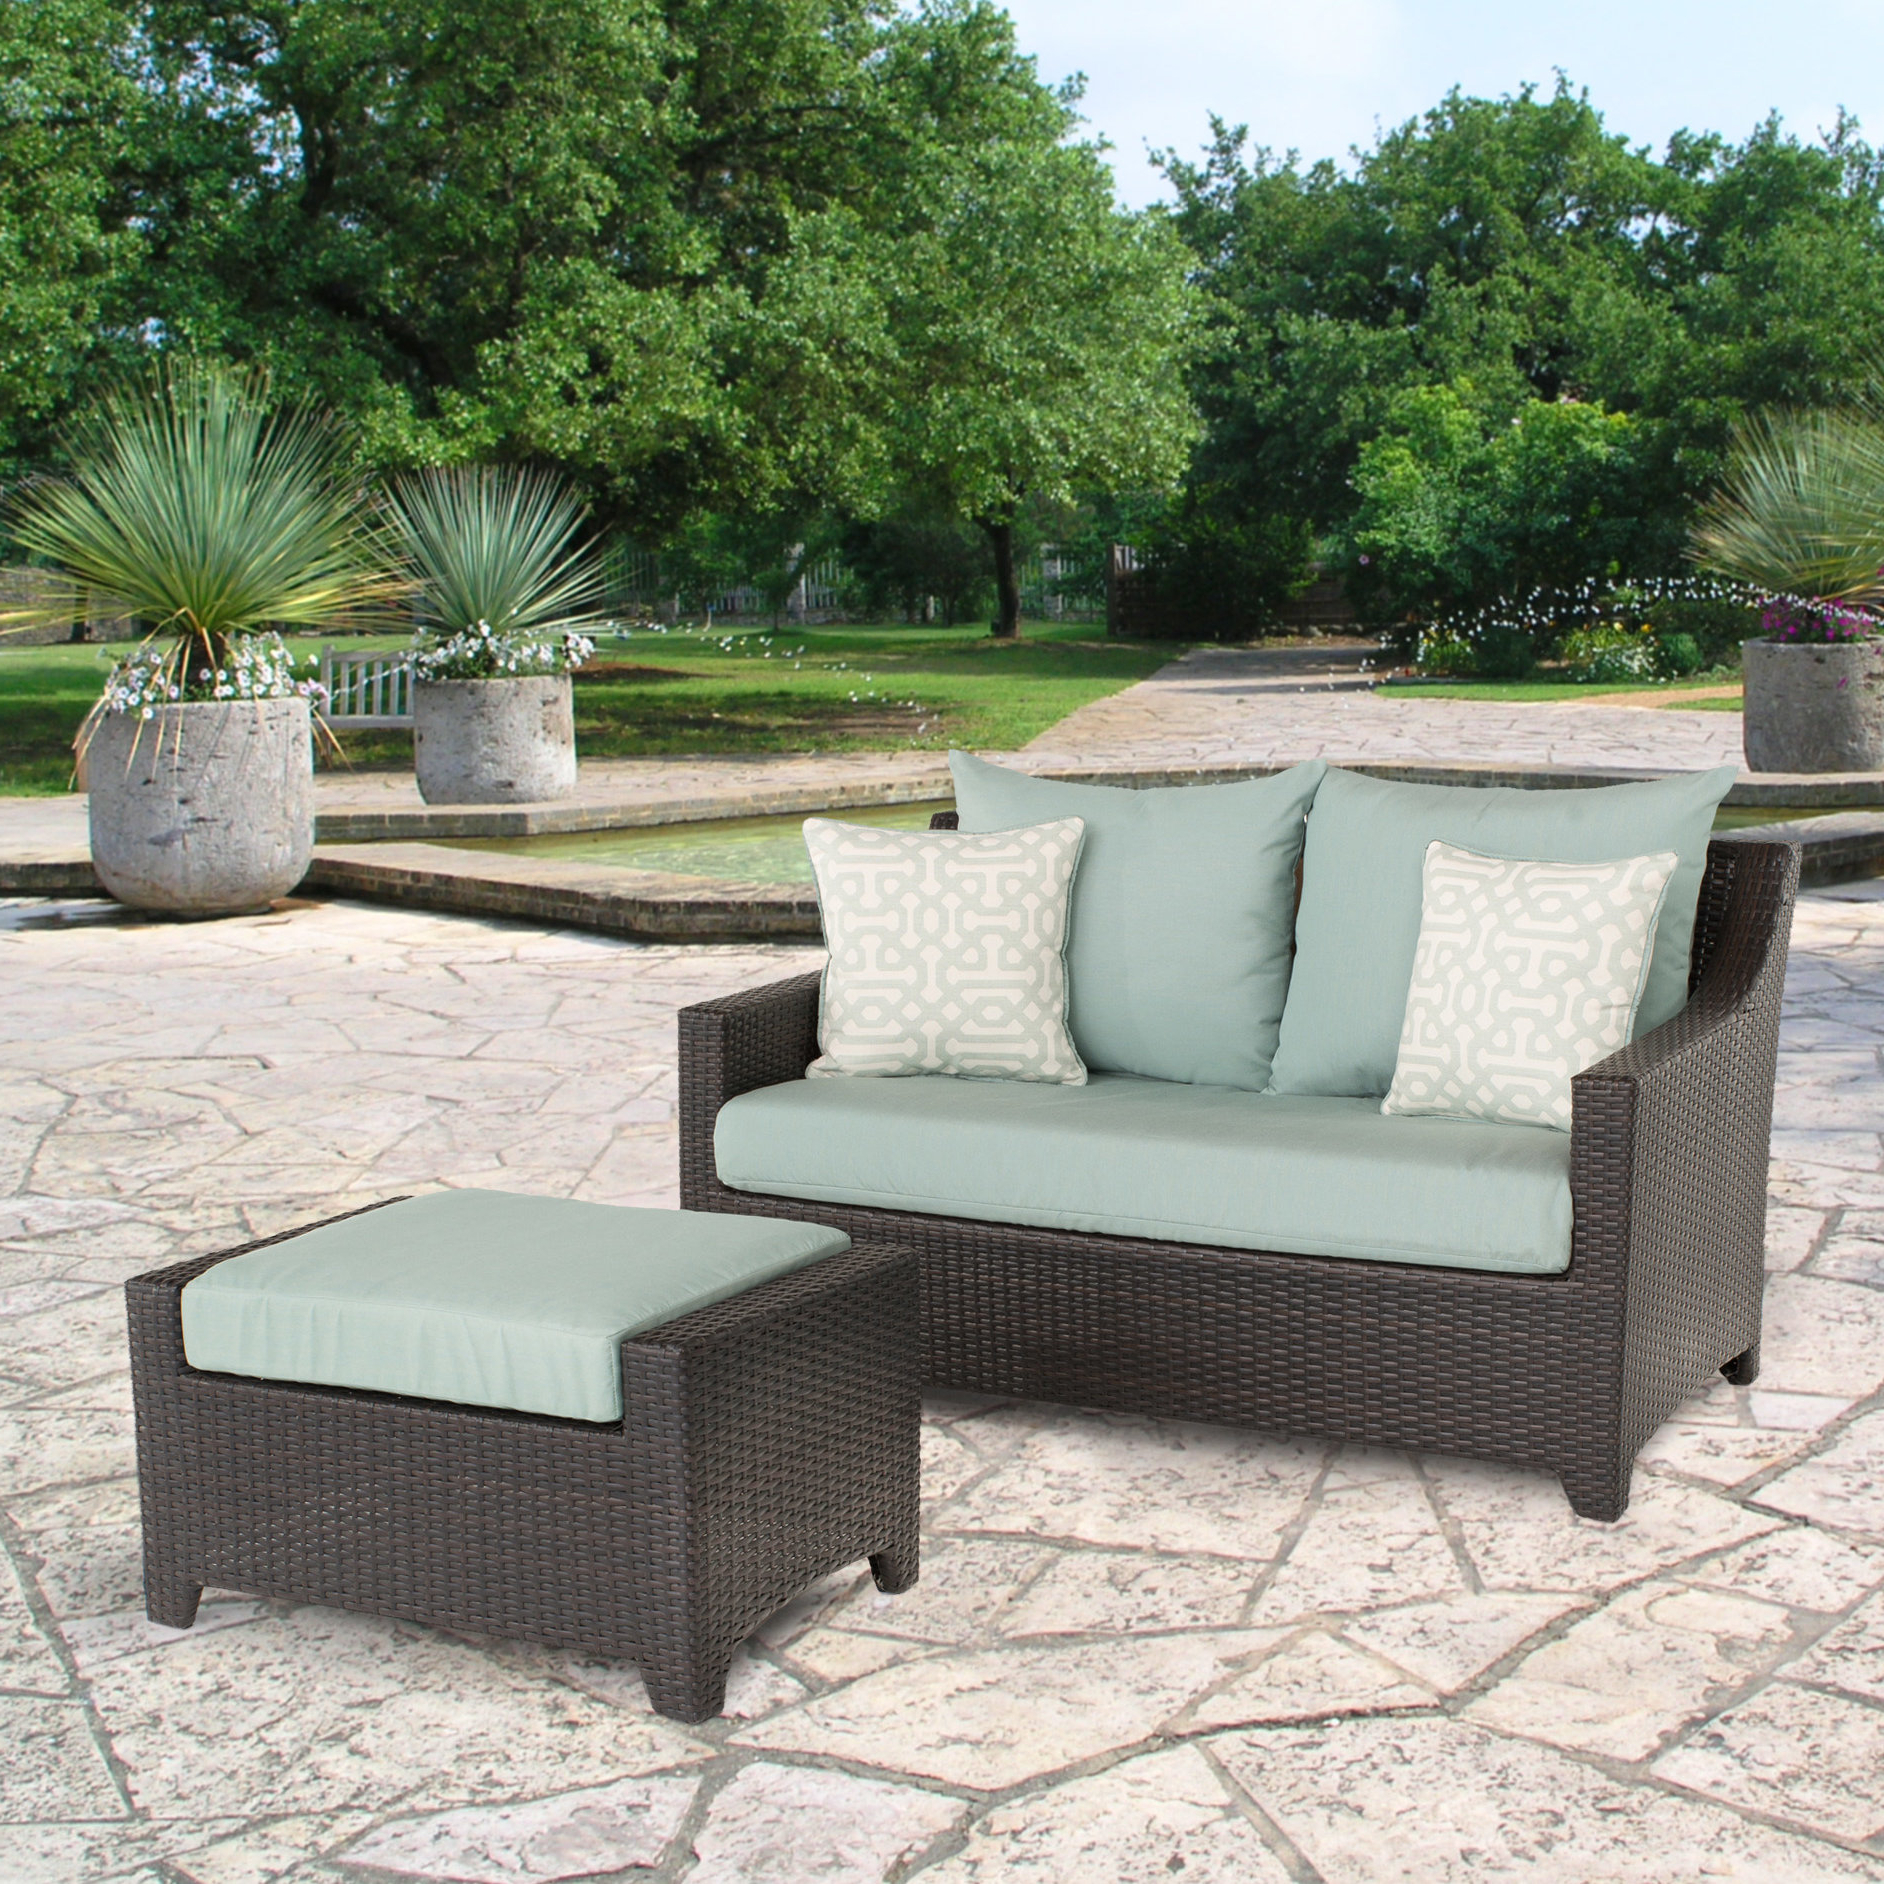 Northridge Patio Sofas With Sunbrella Cushions With Regard To Widely Used Northridge Loveseat With Cushions (View 16 of 20)